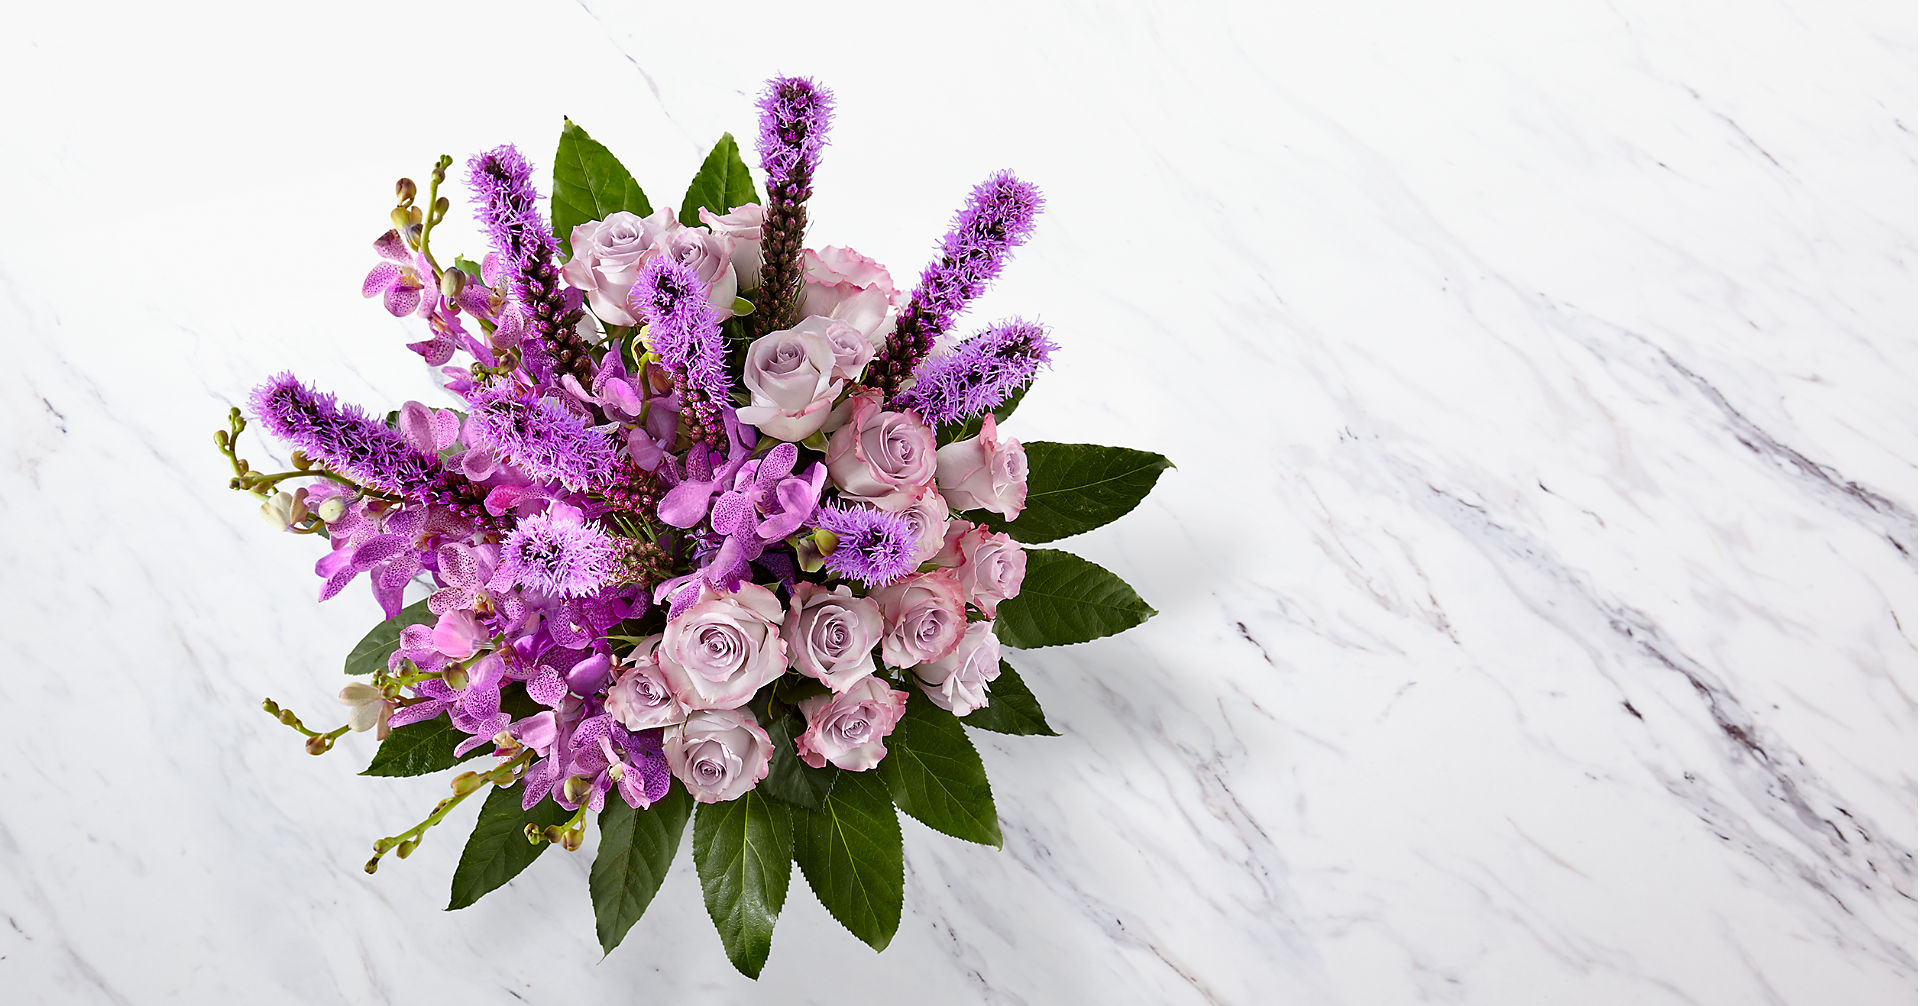 Modern Royalty™ Luxury Bouquet - Image 2 Of 3